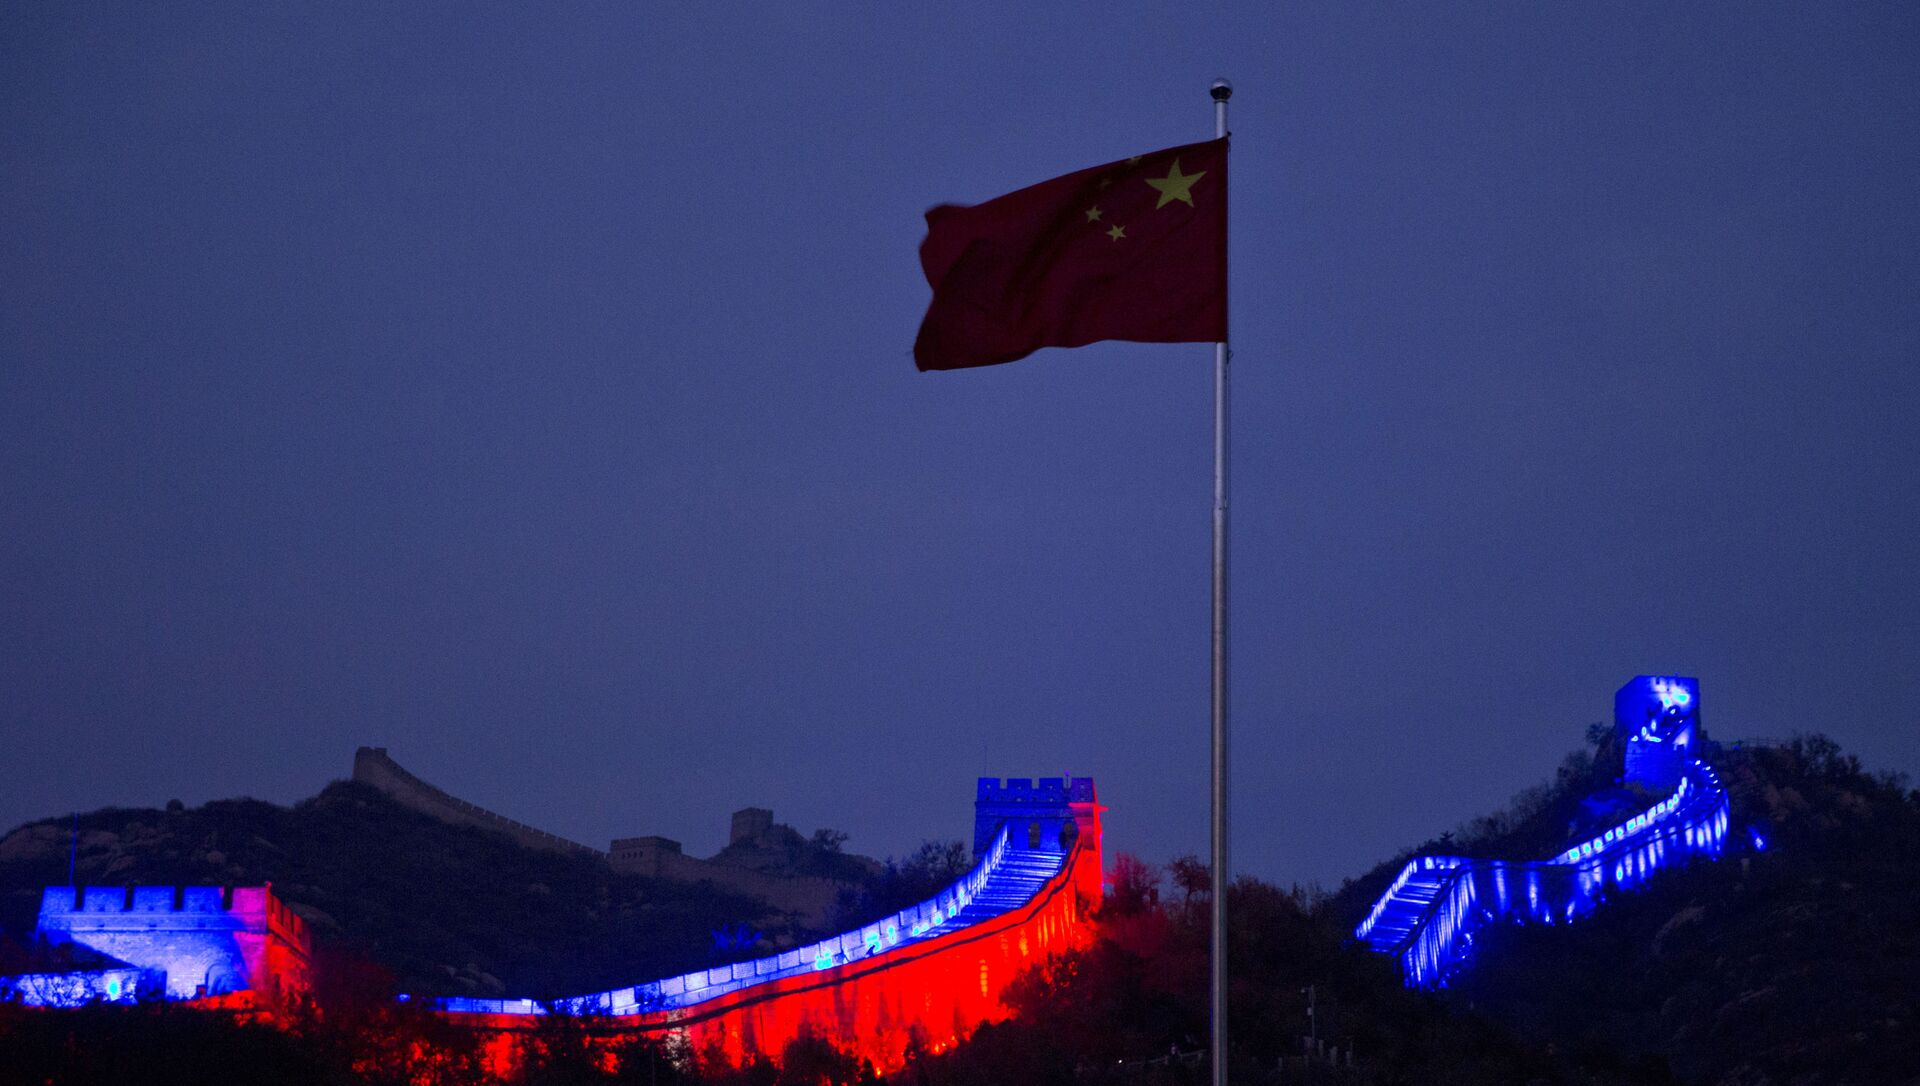 The Chinese national flag flies near a section of the Great Wall of China prepared to be lit by blue light to commemorate the 70th anniversary of the United Nations on the outskirts of Beijing, China, Saturday, Oct. 24, 2015. More than 200 iconic monuments, buildings, museums, bridges and other landmarks around the world were lighted up with blue - the official color of the United Nations to mark its 70th anniversary. - Sputnik International, 1920, 09.04.2021